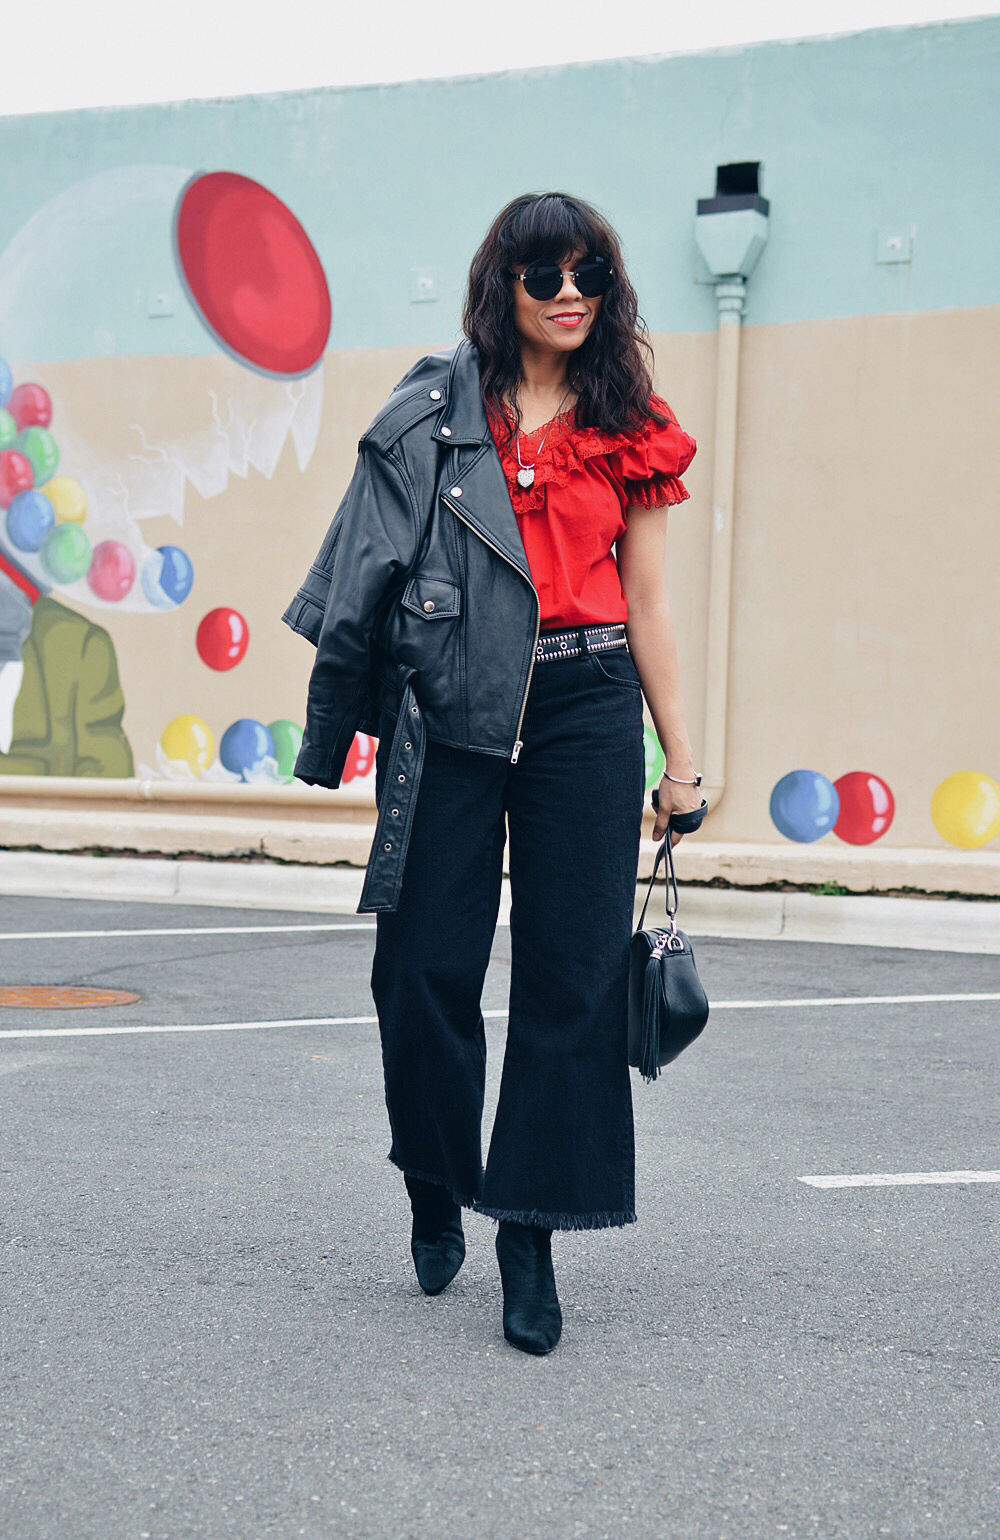 Red with black street style